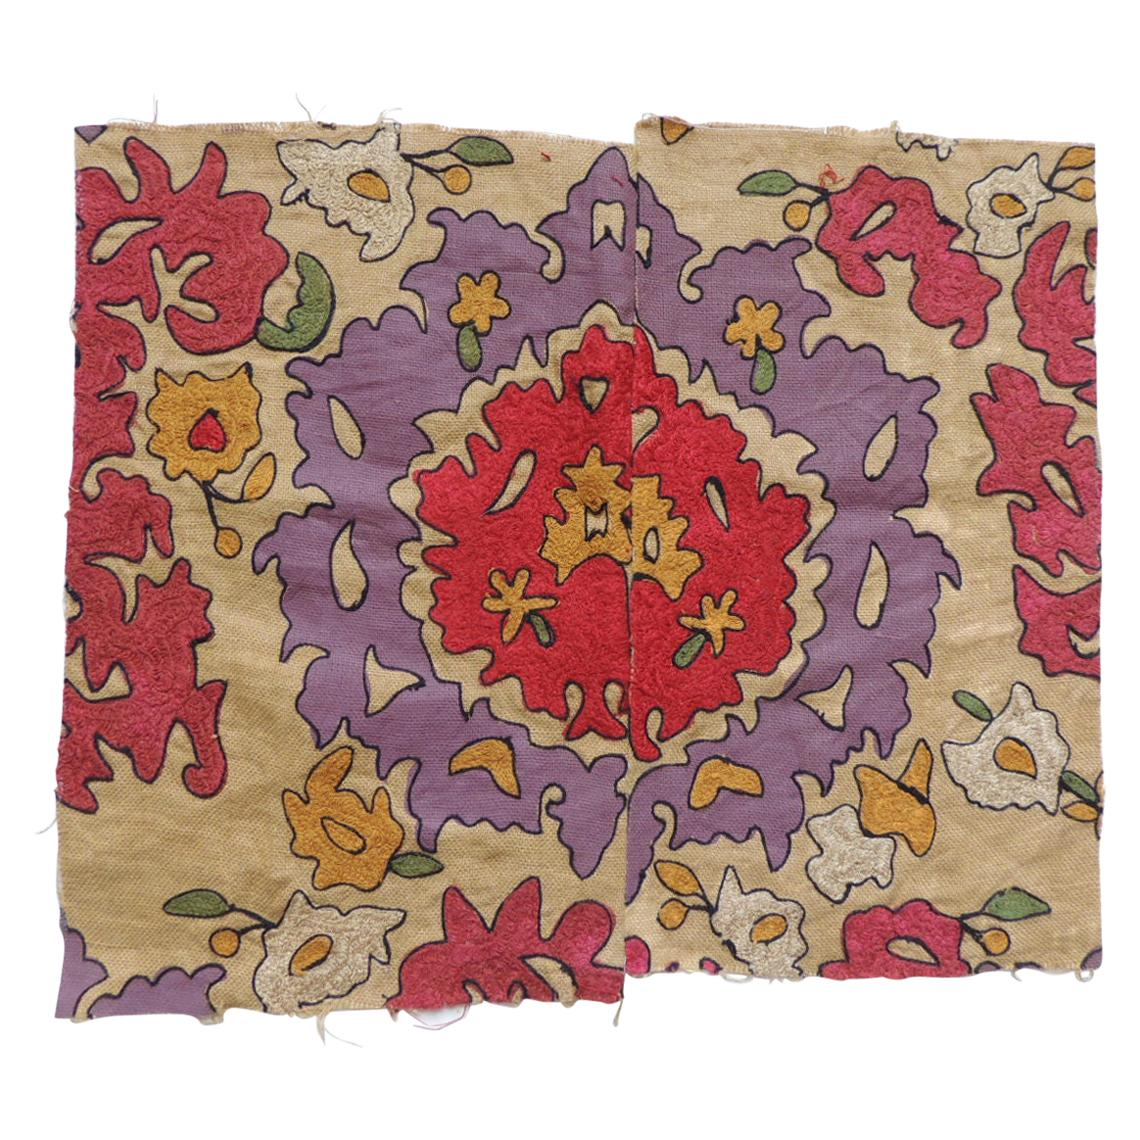 Red and Purple Embroidery Suzani Textile Fragment